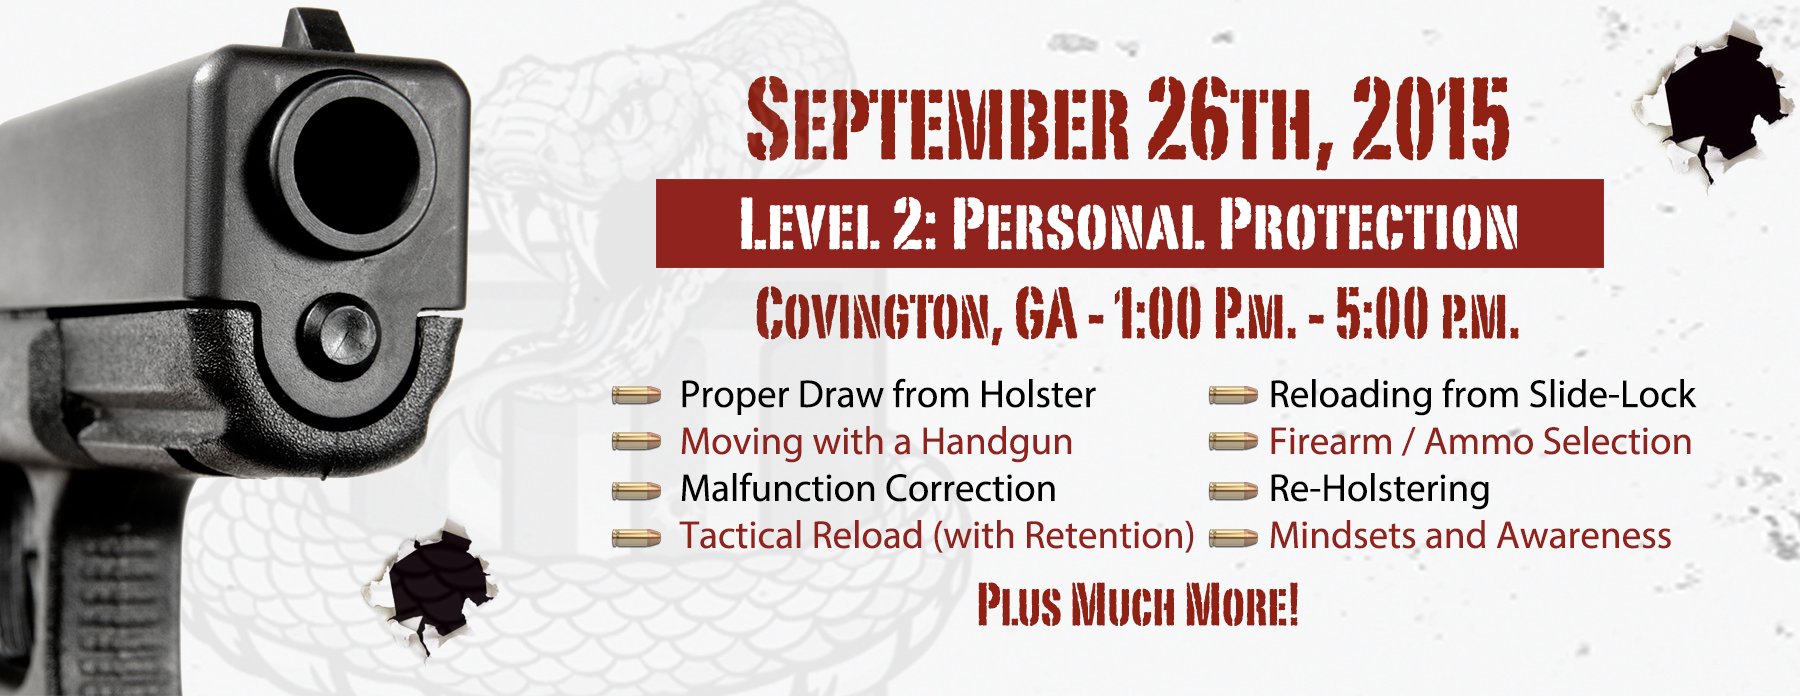 Level 2: Personal Protection with a Handgun